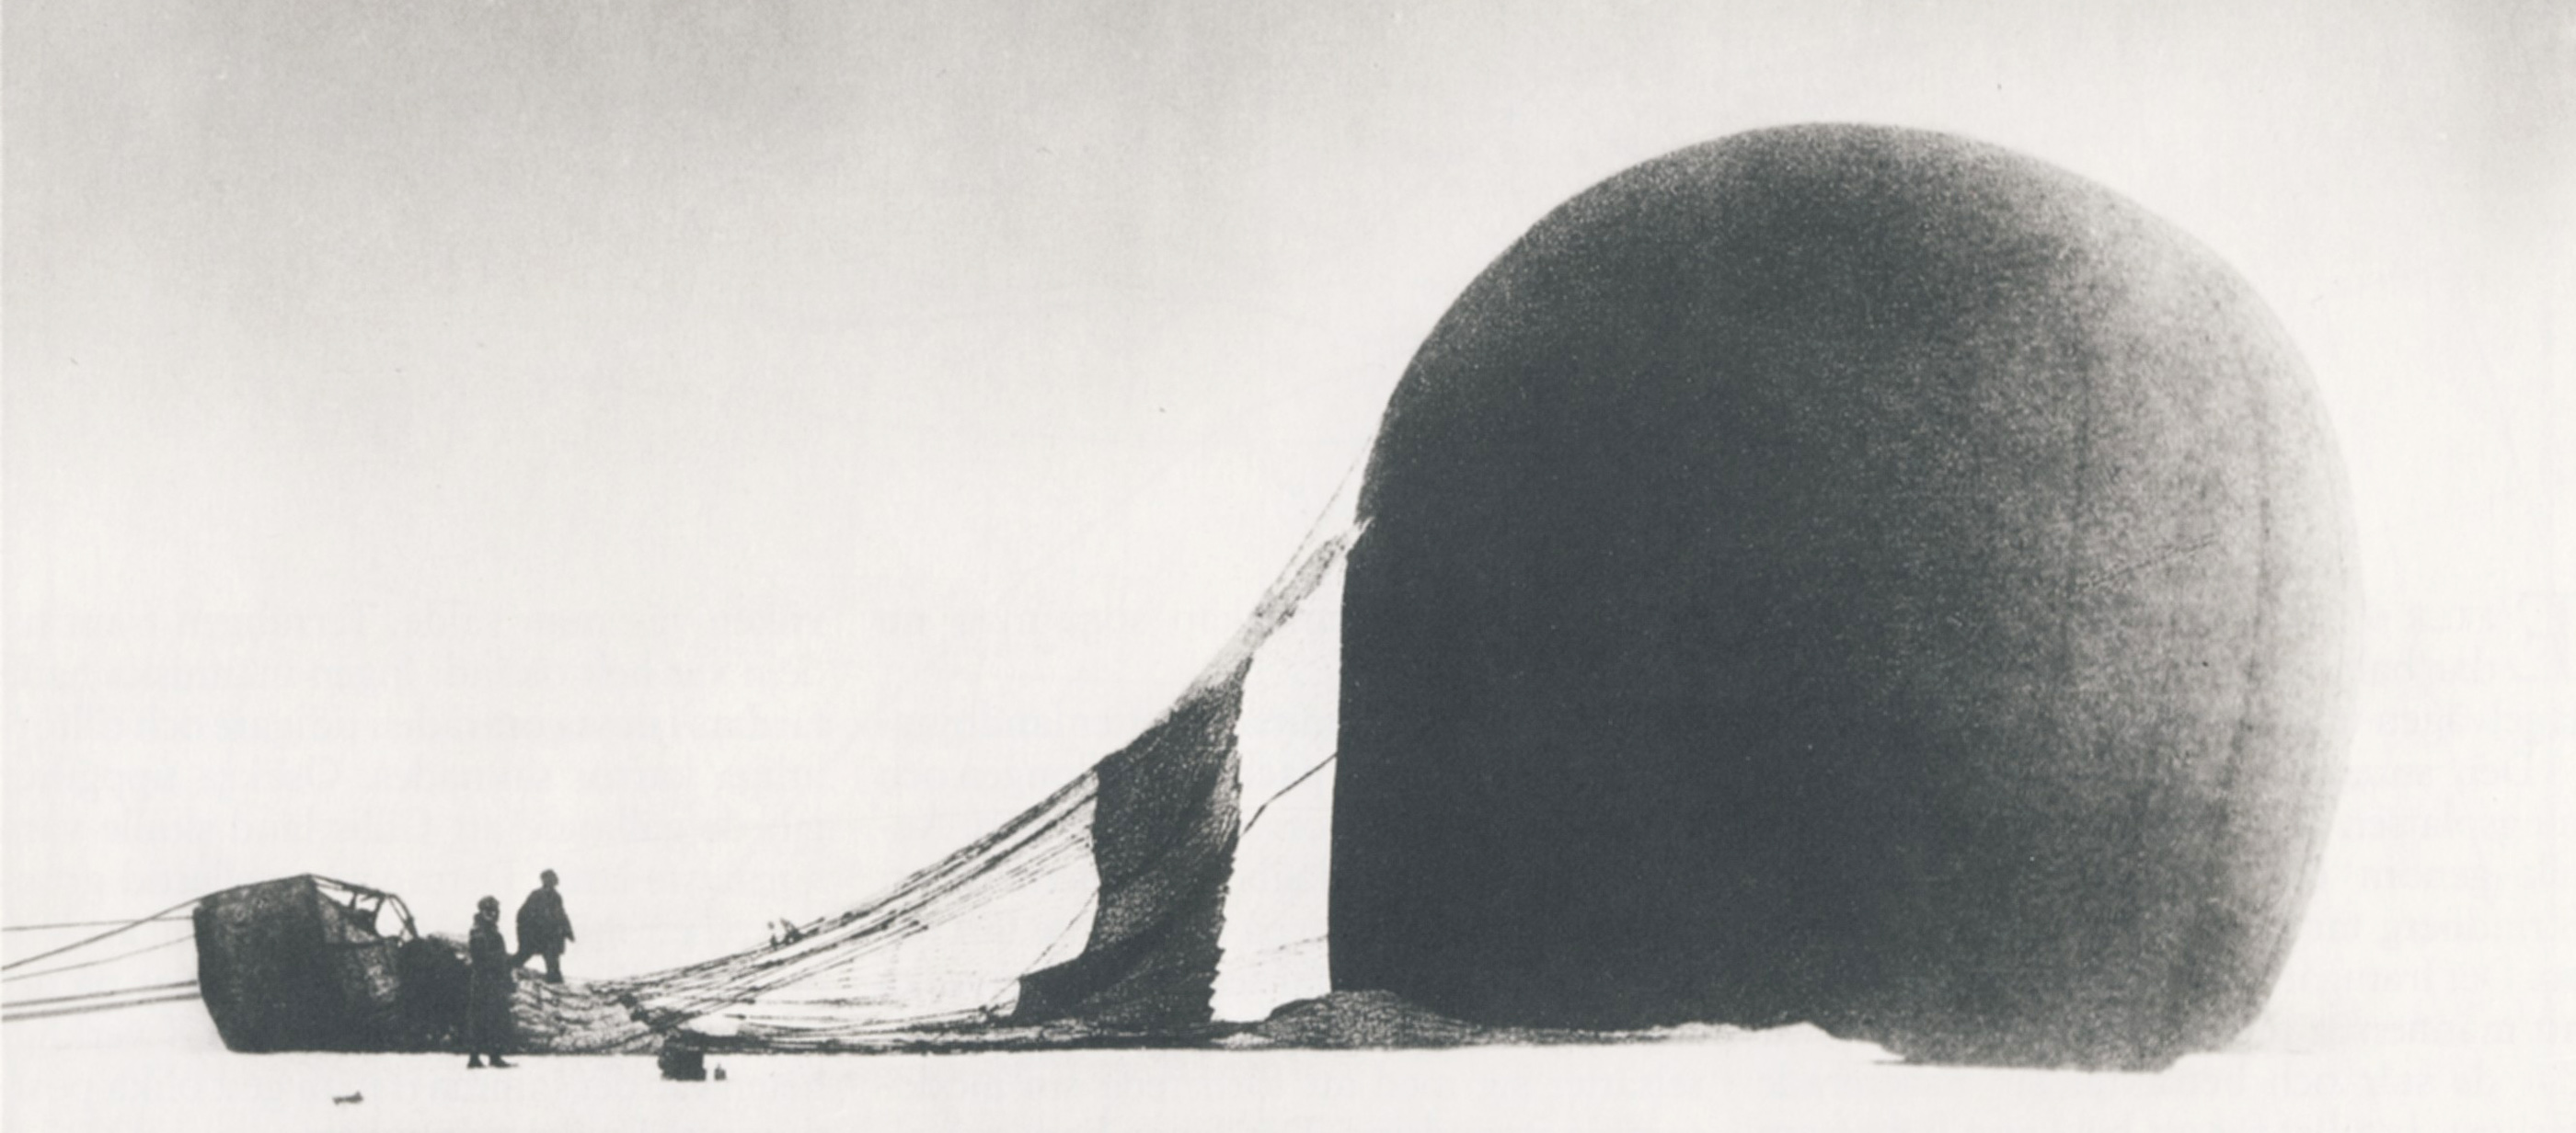 Swedish scientist Salomon Andrée and Knut Frænkel with crashed balloon only two days after their July 1897 departure to chart the North Pole, photograph by third expedition member Nils Strindberg. In 1930, film documenting the trip was found with the expl